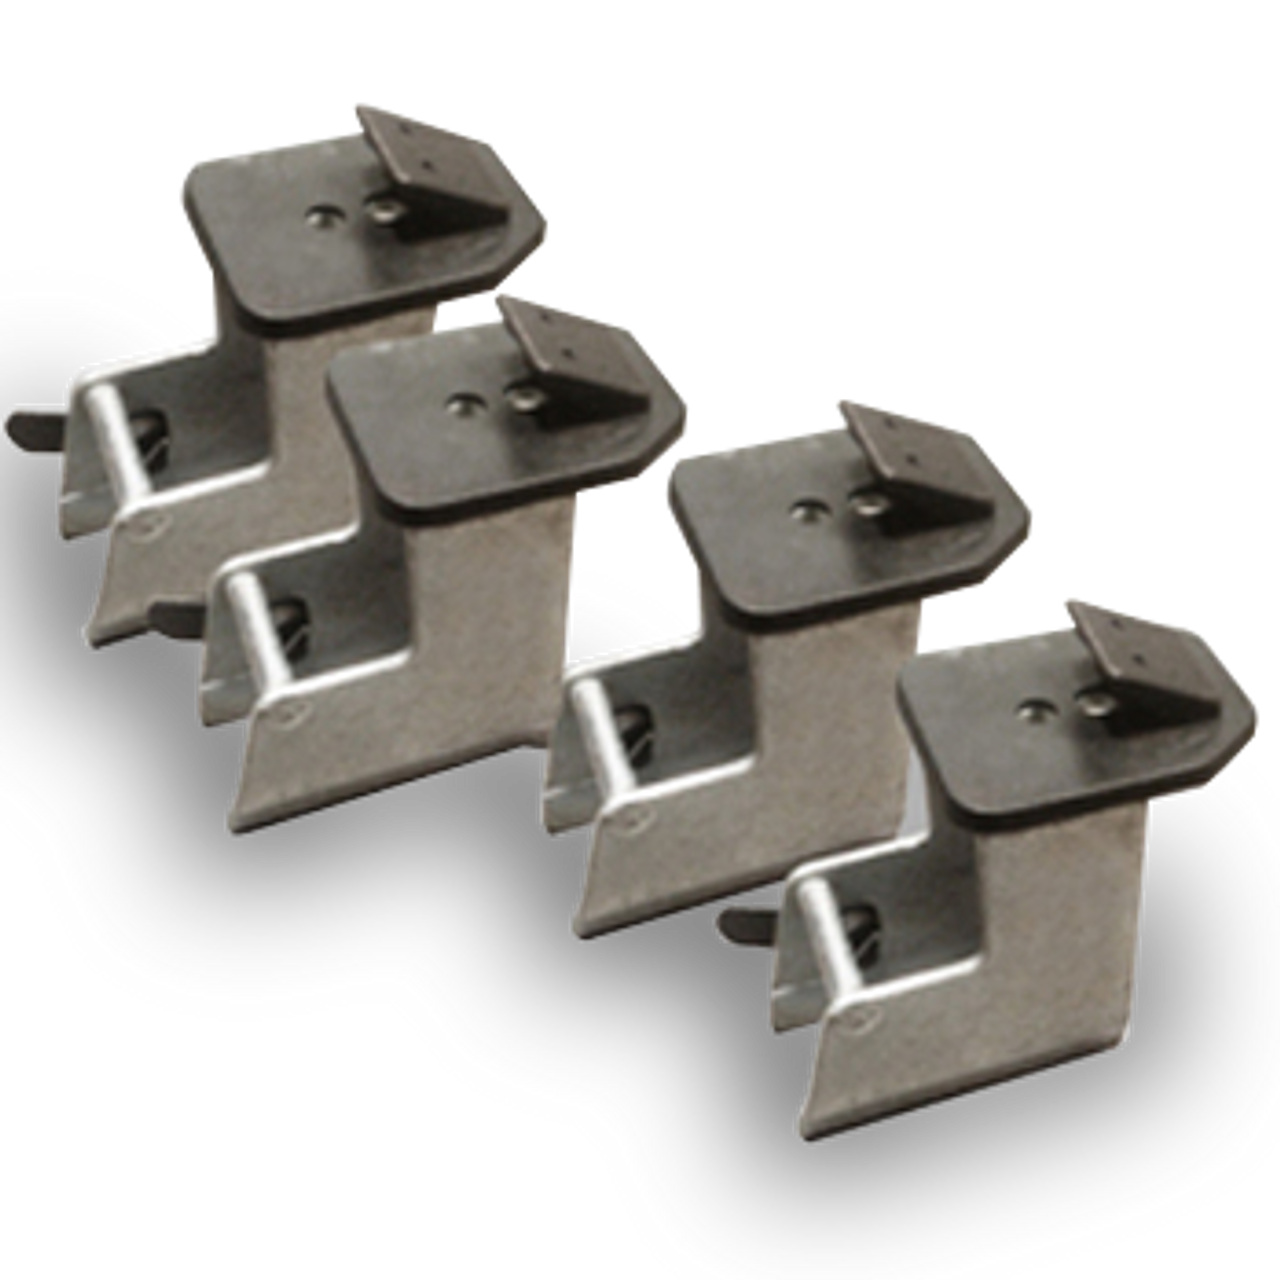 adapter-clamp